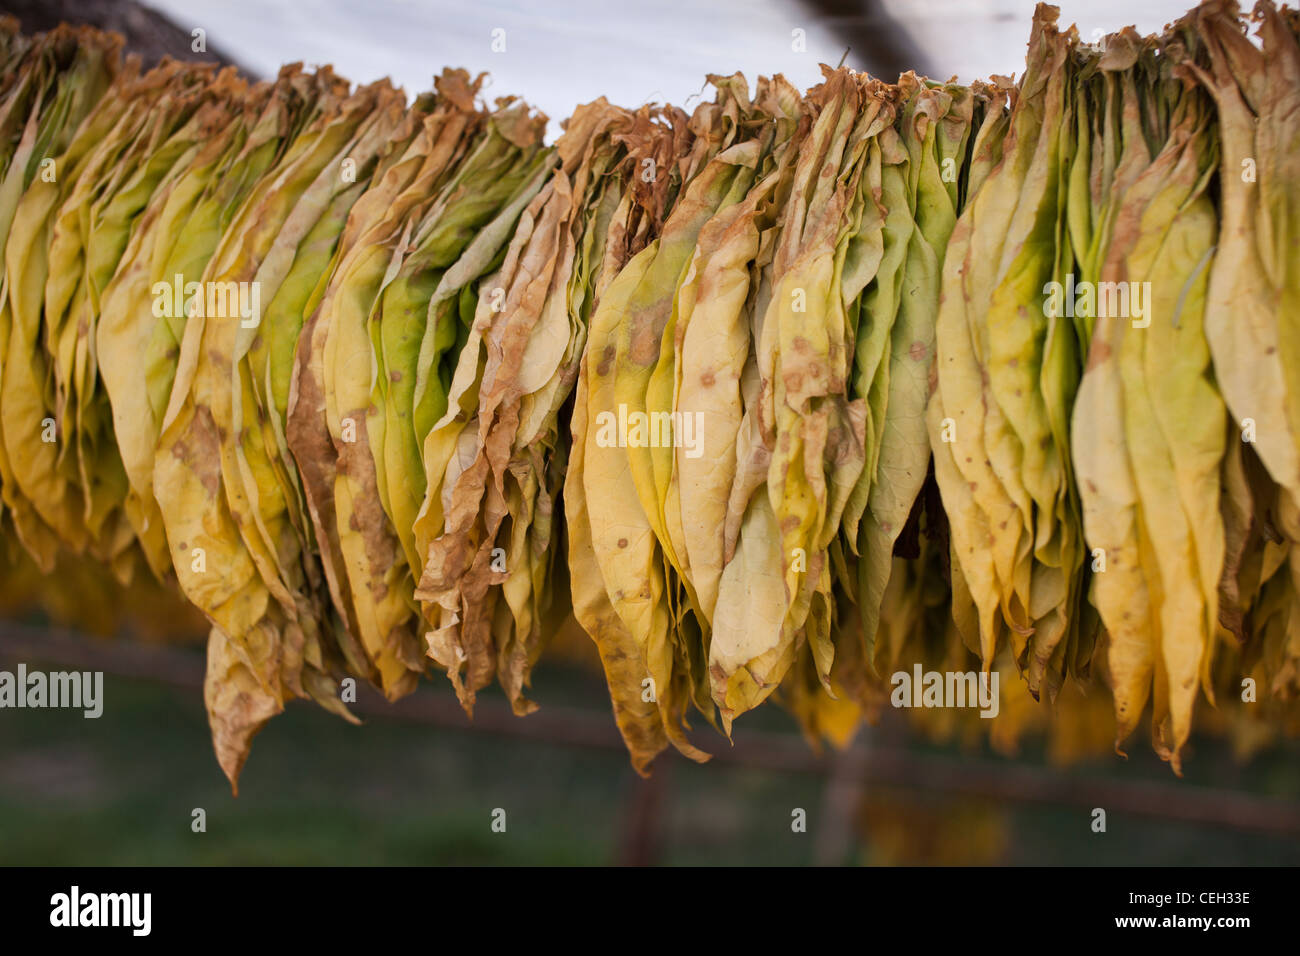 semi dry air cured tobacco leaves{NICOTIANA sp.) - Stock Image